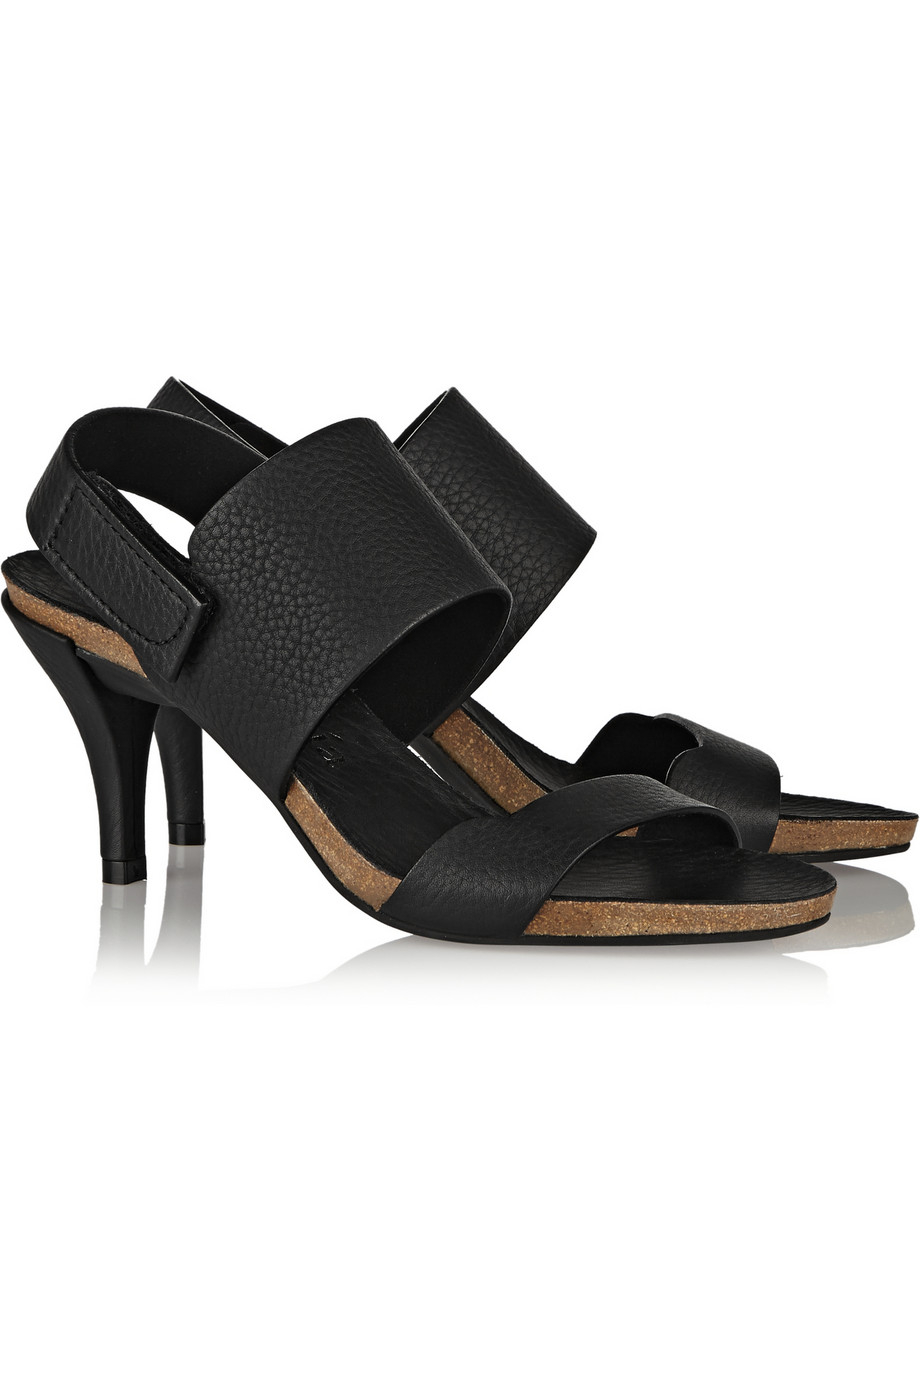 9dea9246f6a Lyst - Pedro Garcia Whisper Textured-Leather Sandals in Black